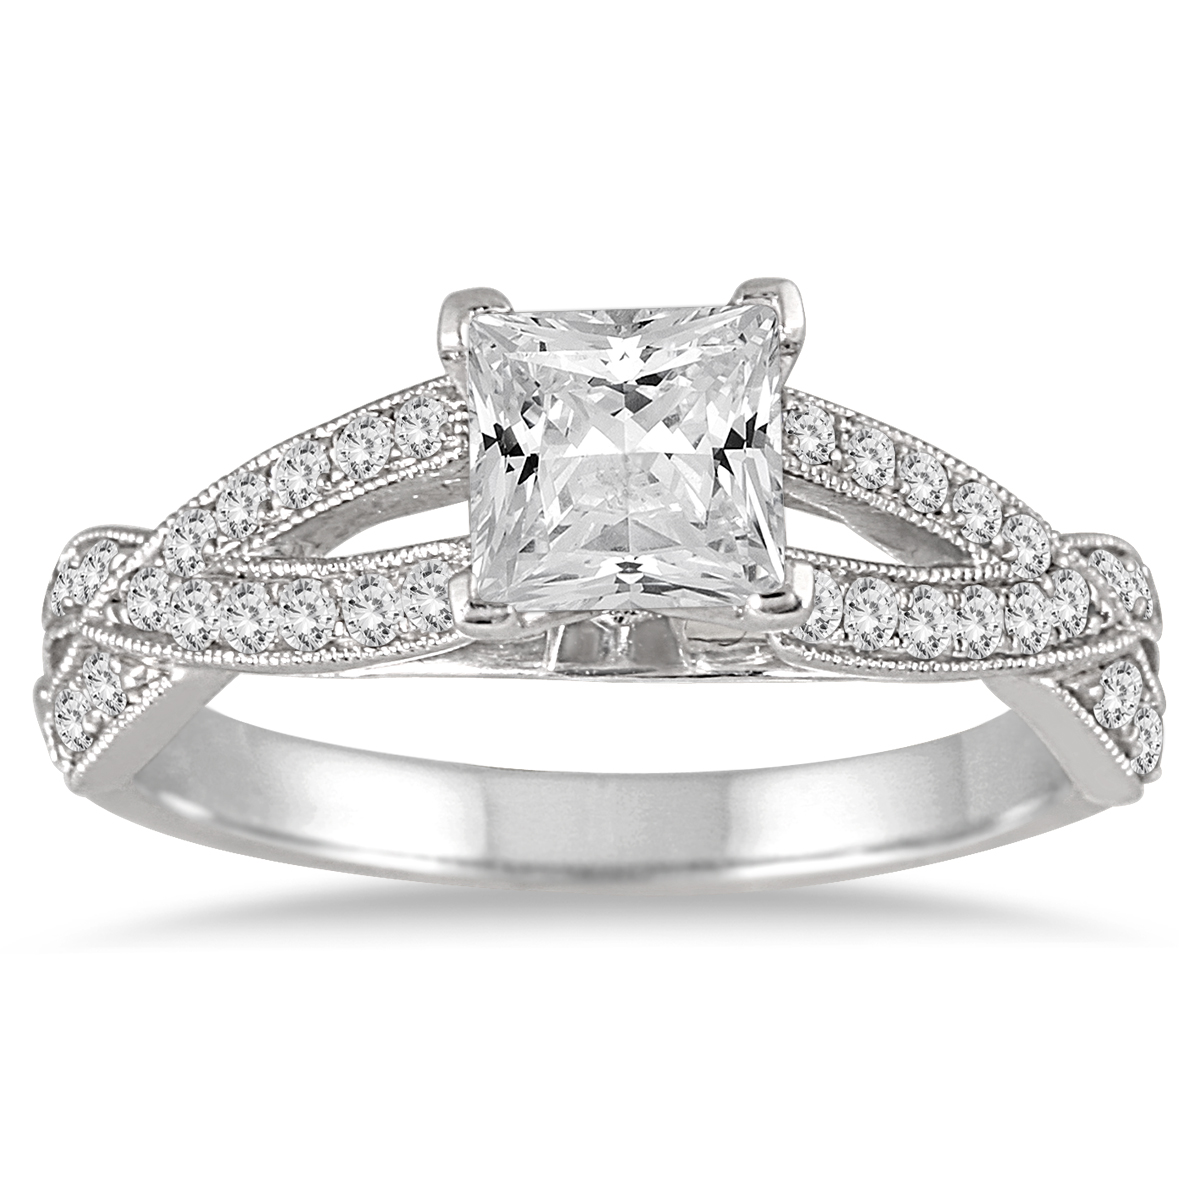 Engagement Rings, Antique Engagement Rings, 1 Carat Diamond Rings, Diamond Rings, Diamond Engagement Rings, Blue Diamond Engagement Rings, Black Diamond Engagement Rings, Cheap Engagement Rings, Engagement Rings, Bridal Sets, Wedding Sets